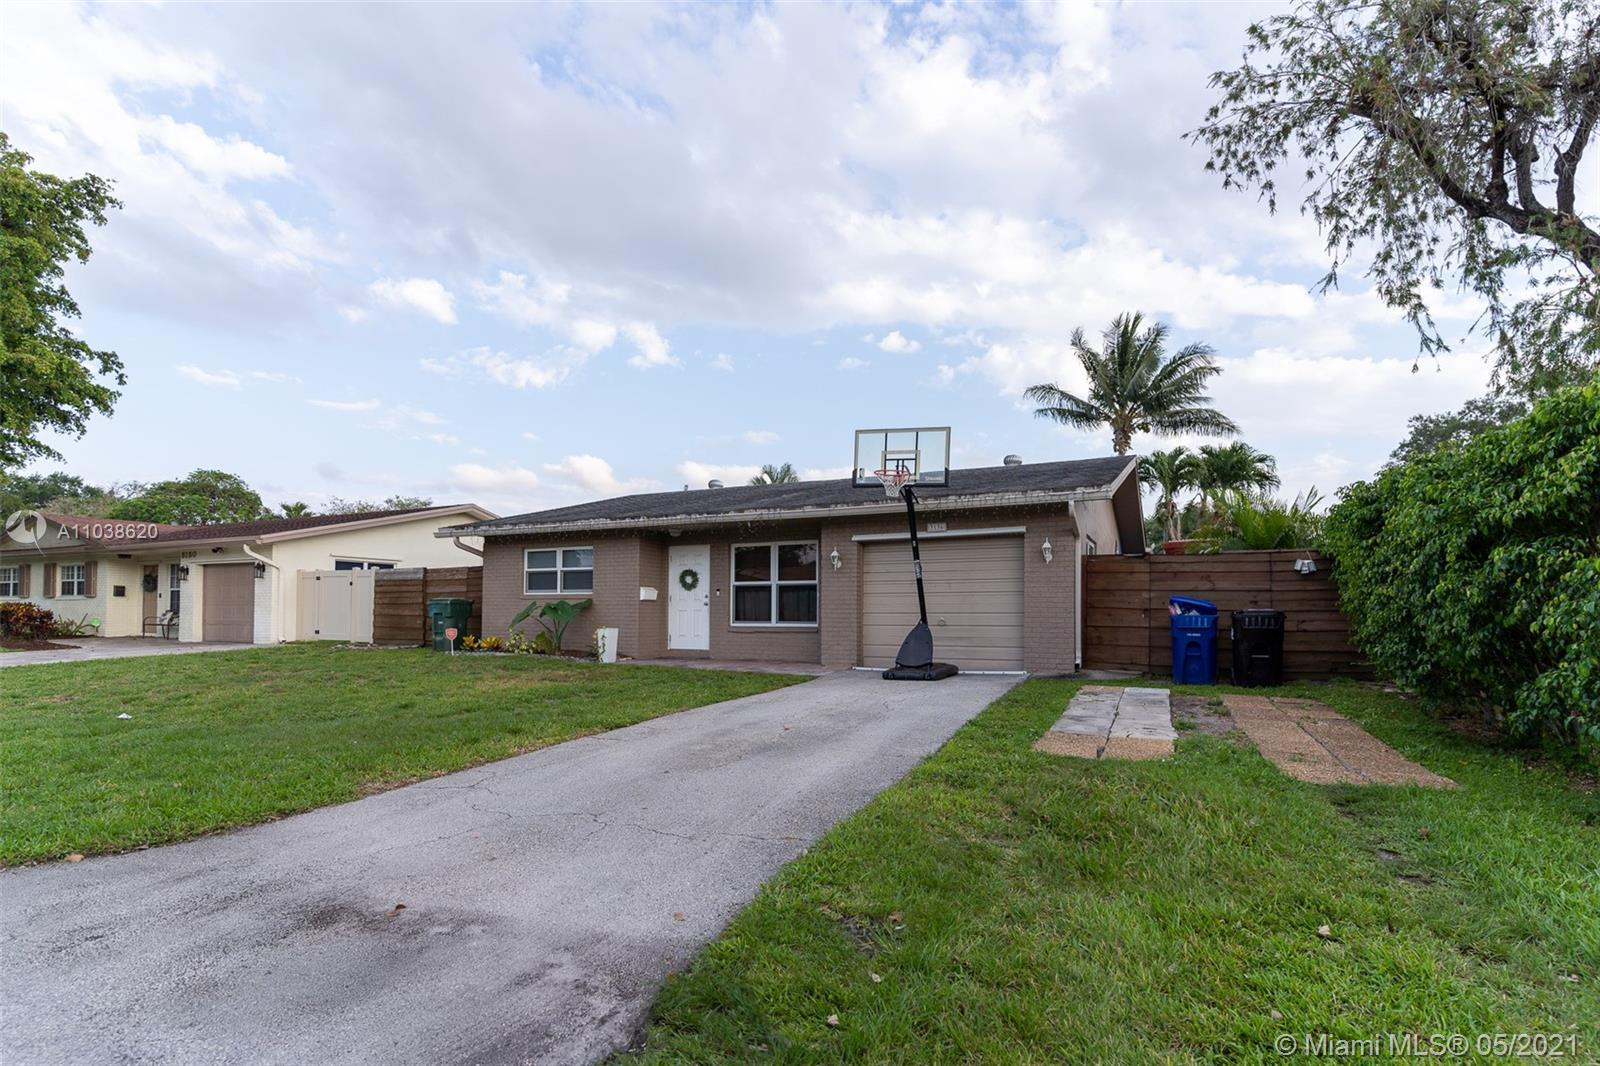 BRIGHT & SPACIOUS POOL HOME, LOCATED IN DESIRABLE PALM AIRE VILLAGE WEST. THIS 4-BEDROOM FAMILY HOME